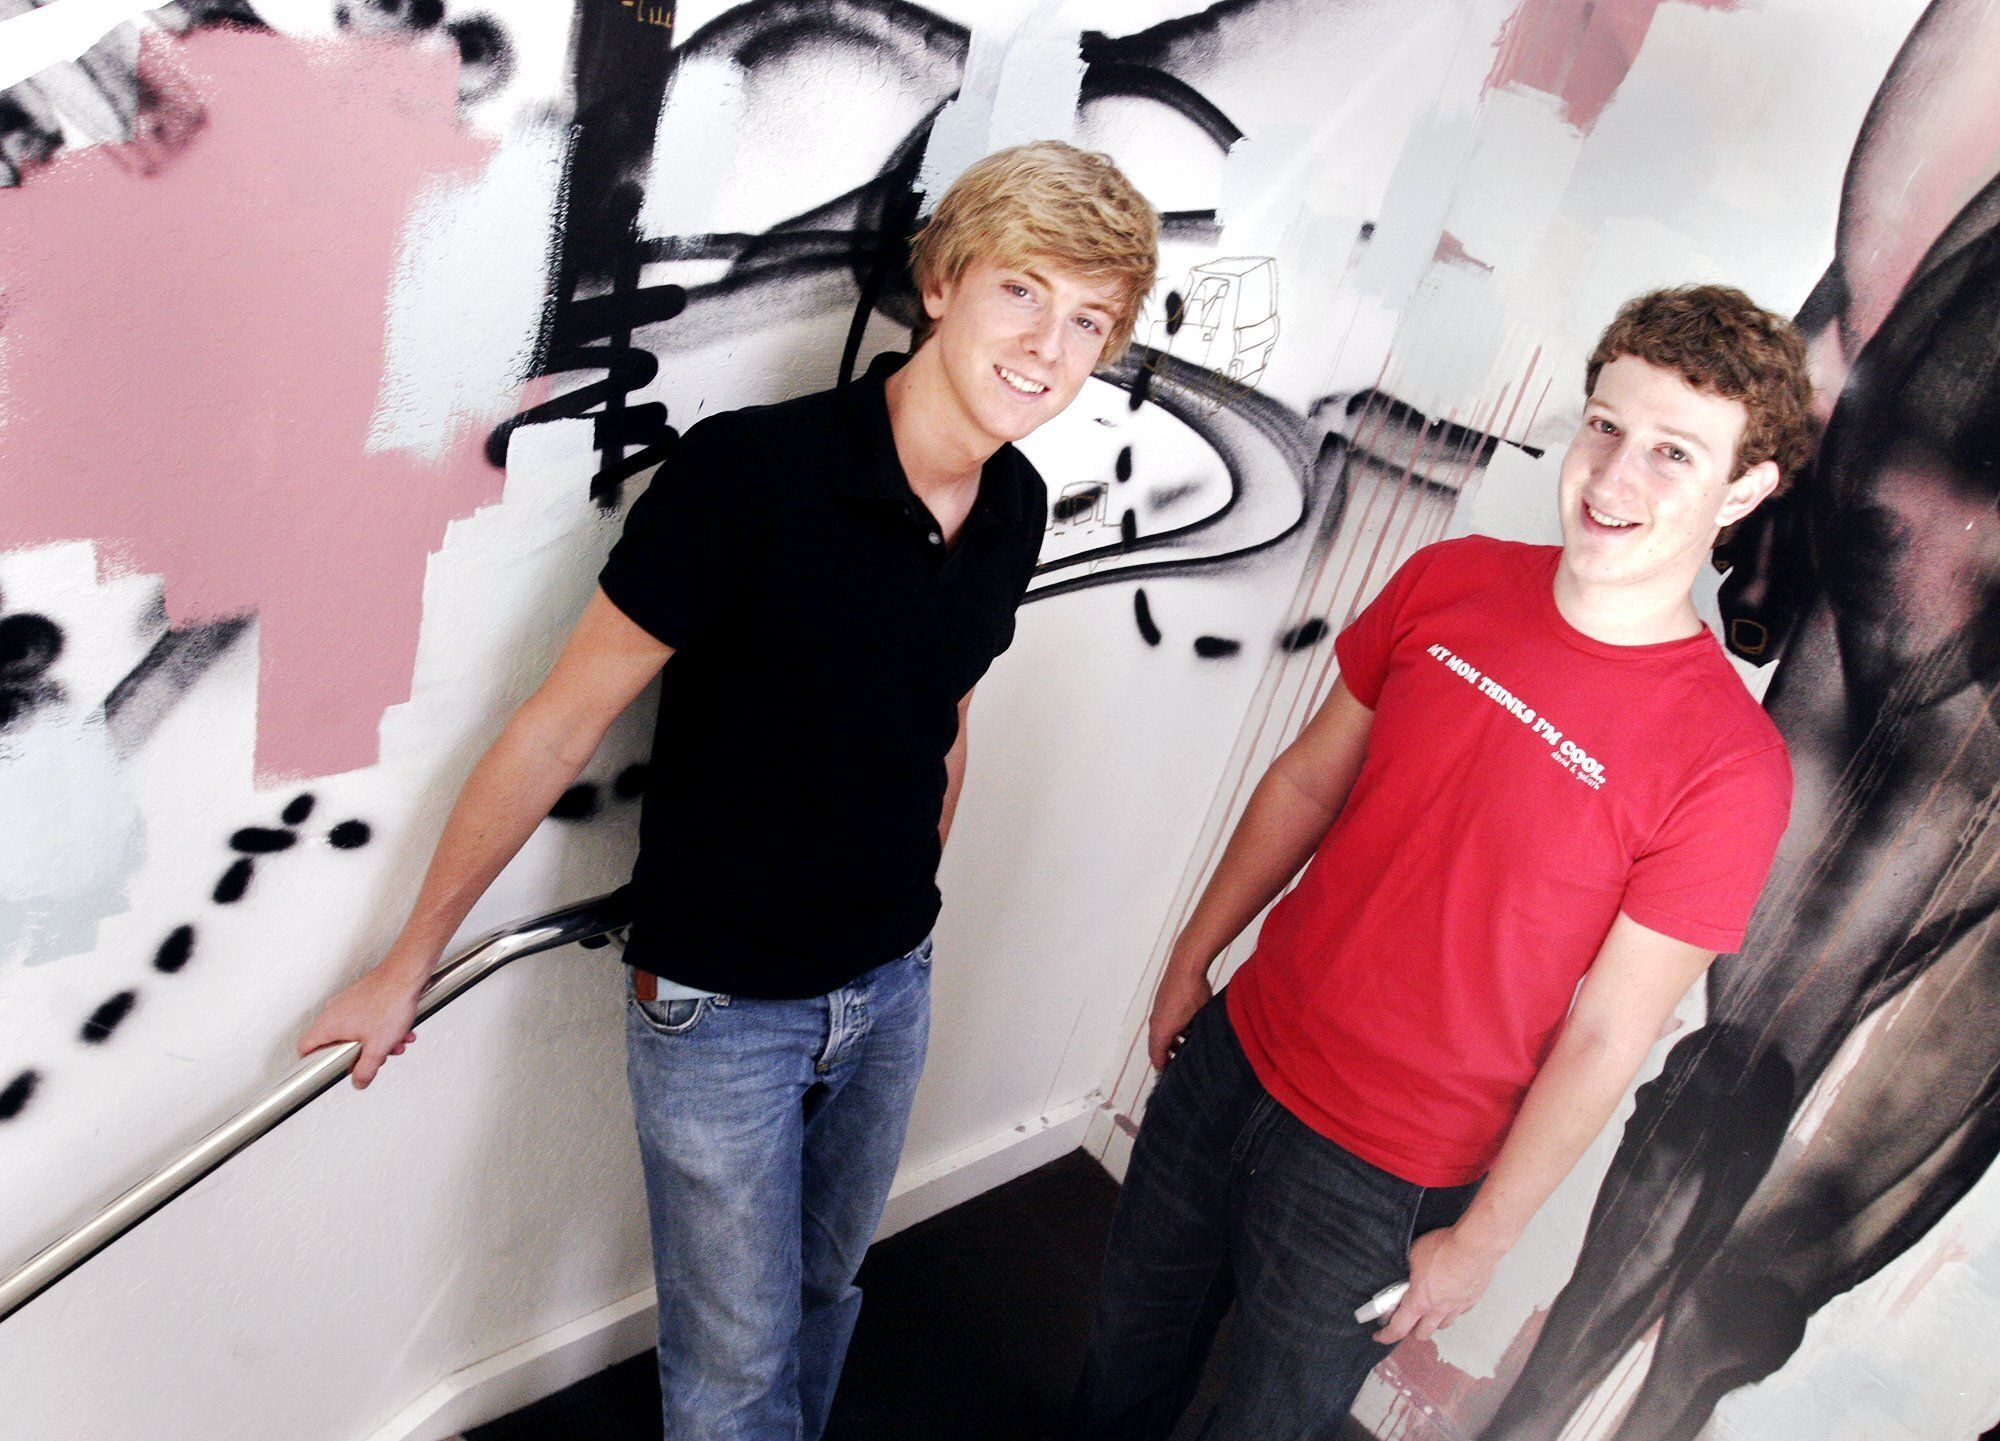 Chris Hughes (left) and Mark Zuckerberg (right) pose for a picture at their Palo Alto office in